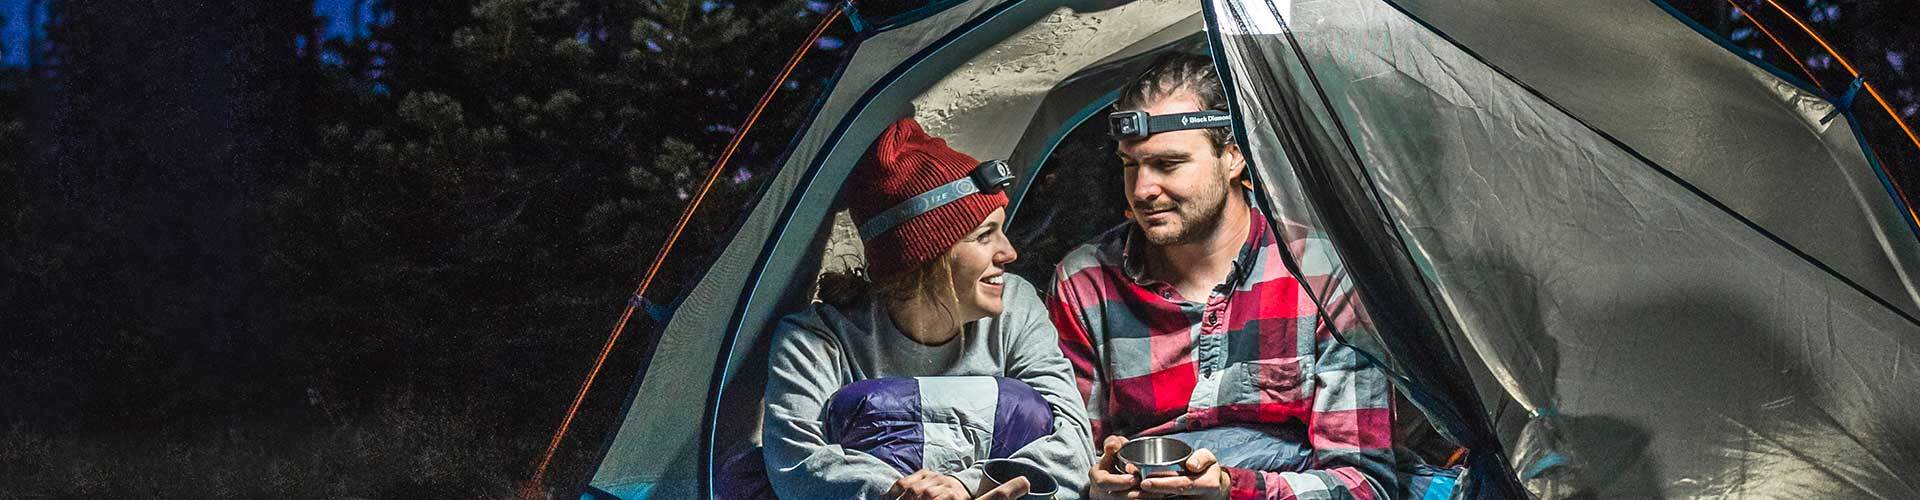 Man and woman enjoying the cold weather in a Kelty tent